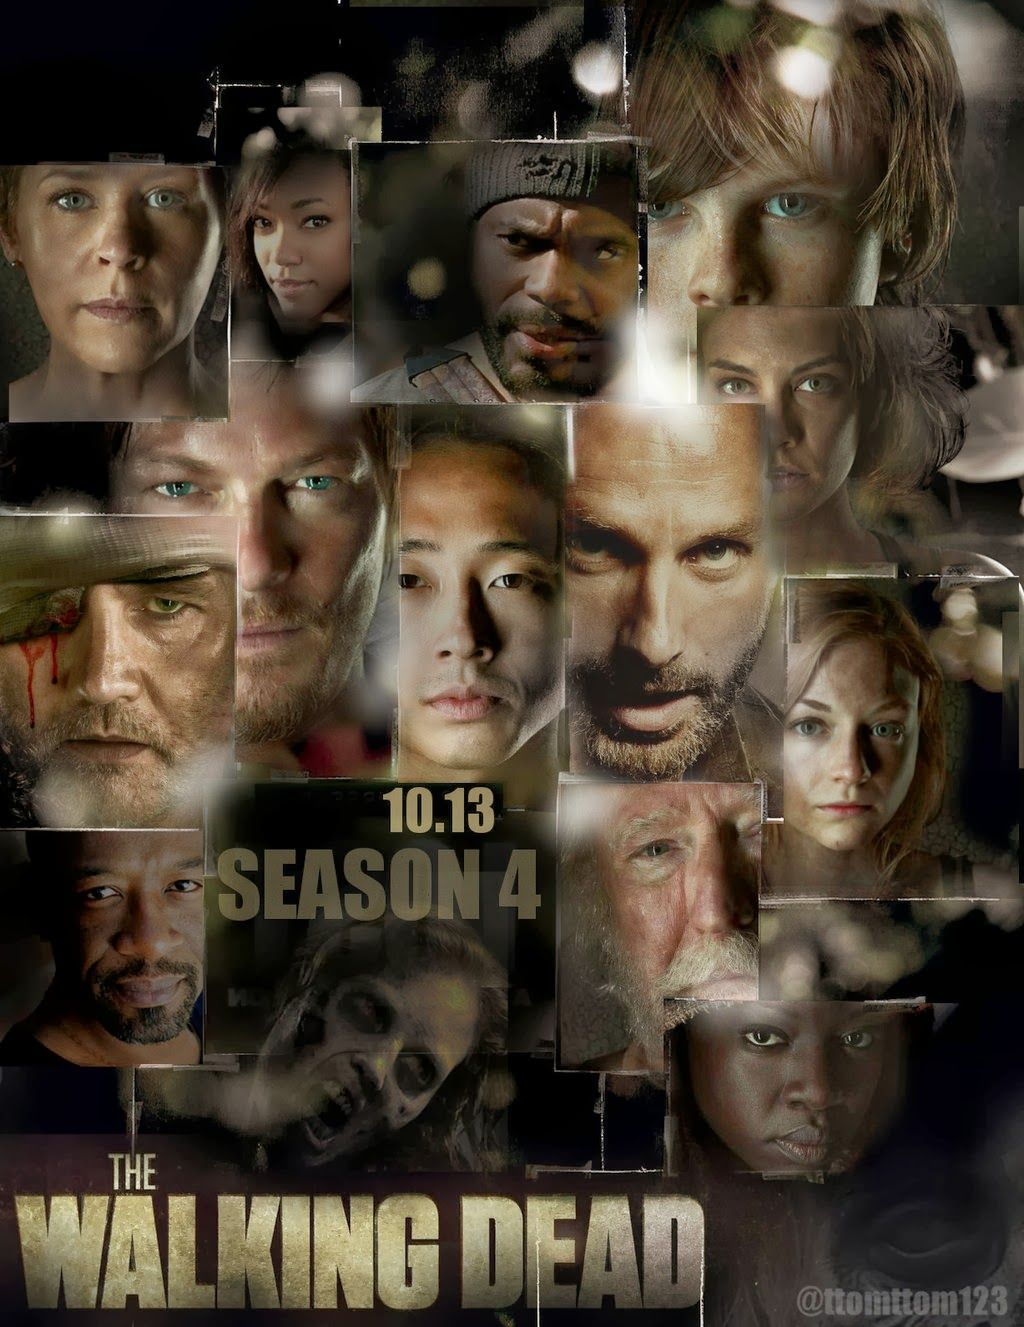 The Walking Dead SEASON 1 POSTERS- | ... FAVIAN DE BARRACAS SERIES ...